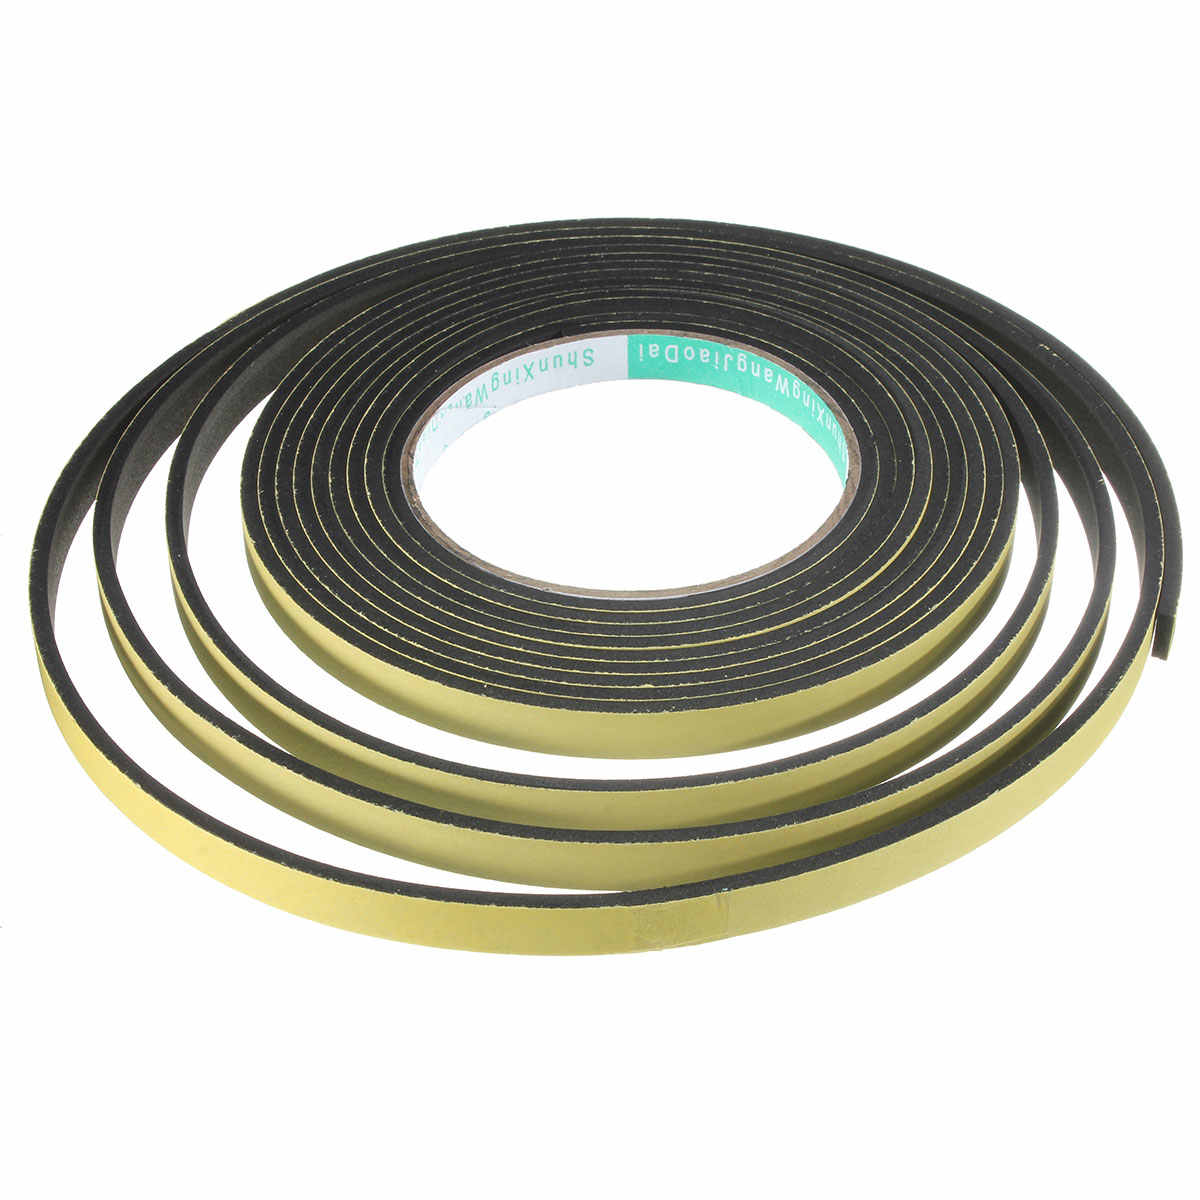 5m*10mm*2mm/3mm Single Sided Adhesive Waterproof Weather Stripping Foam Sponge Rubber Strip Tape For Window Door Seal Strip